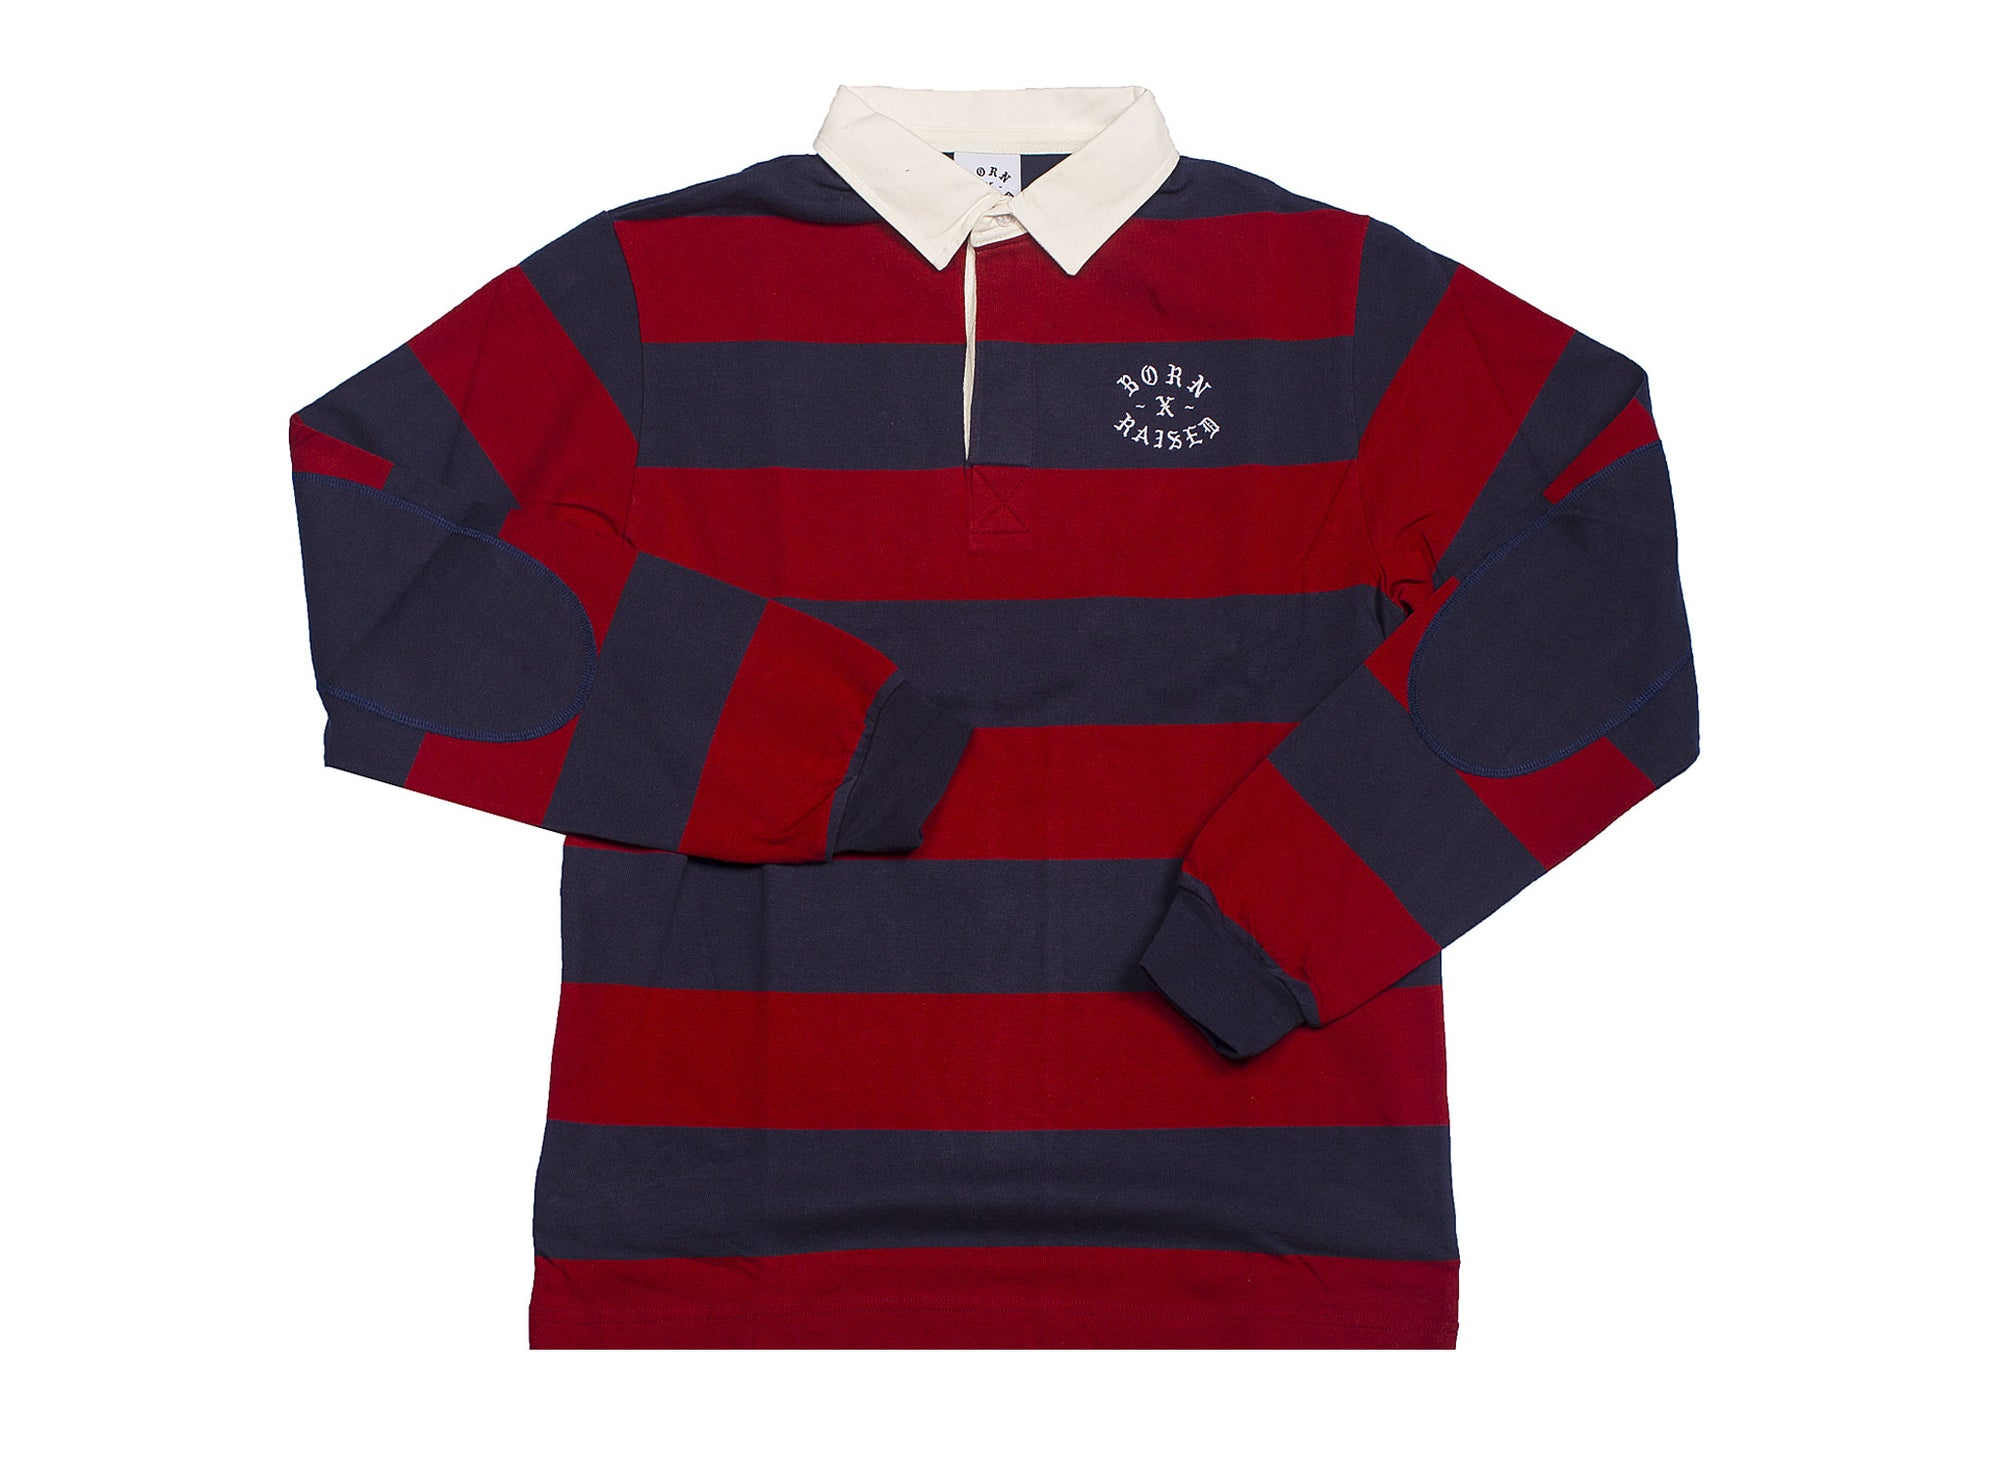 BORN x RAISED RUGBY LS SHIRT